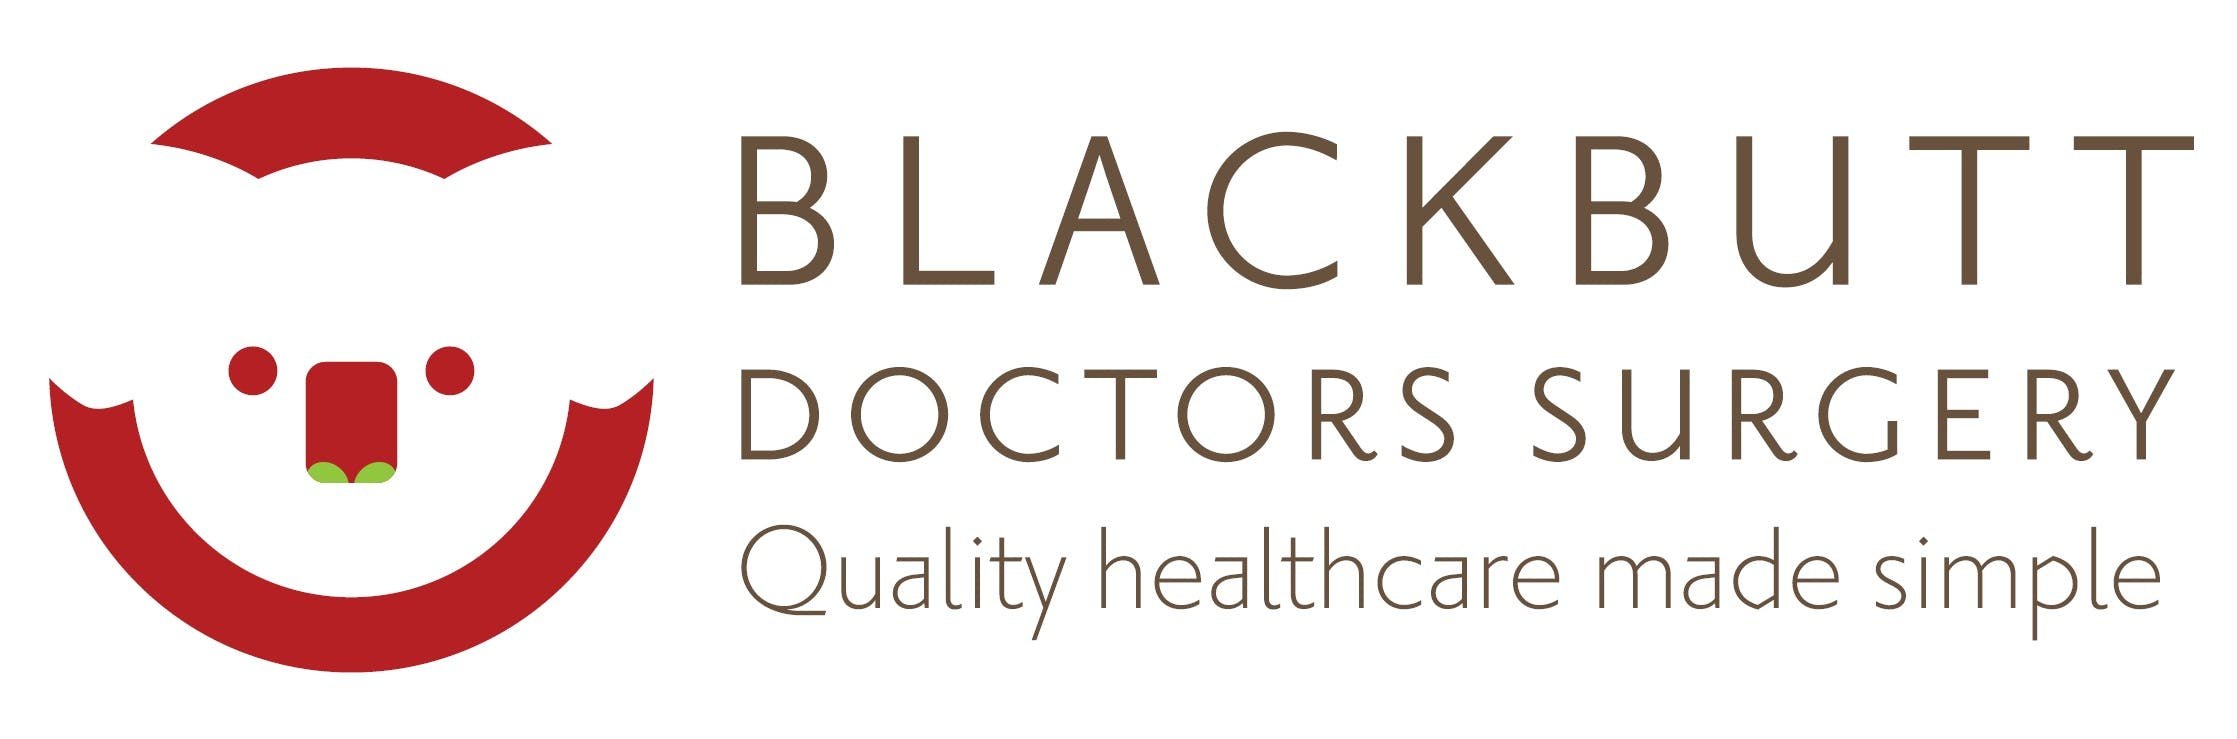 Blackbutt Doctors Surgery Logo